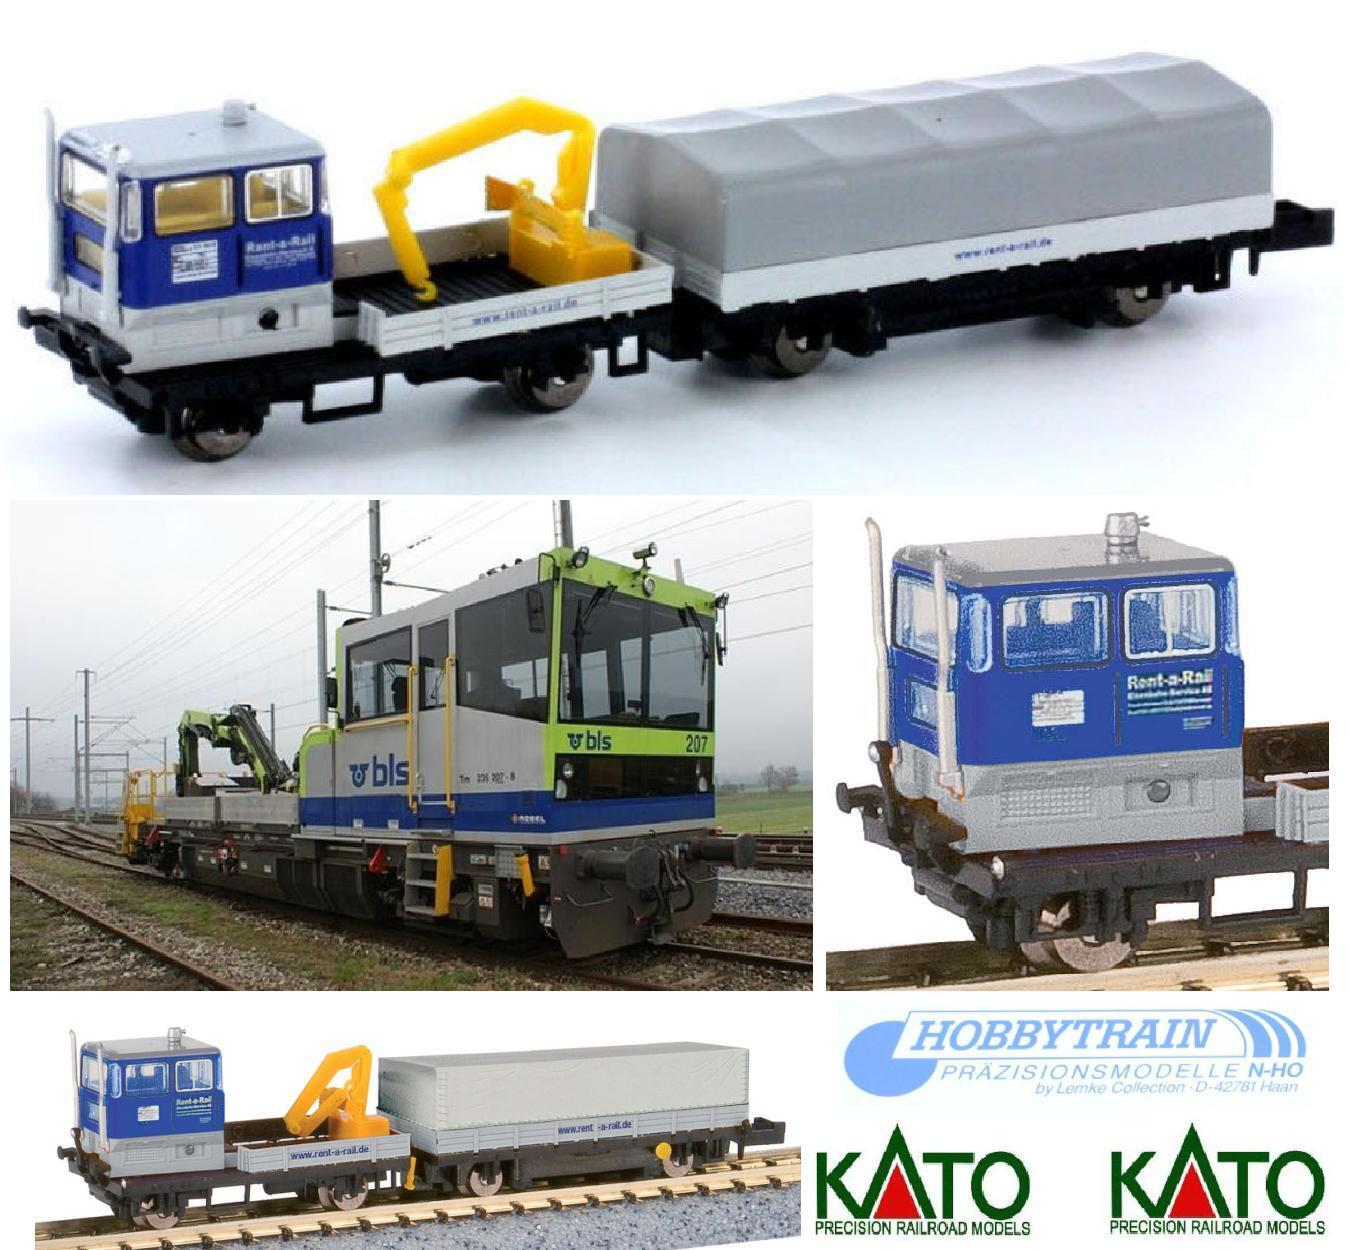 KATO HOBBYTRAIN 23555 LOCOMOTIVE DRAISINE with TOW and crane also FS LADDER-N